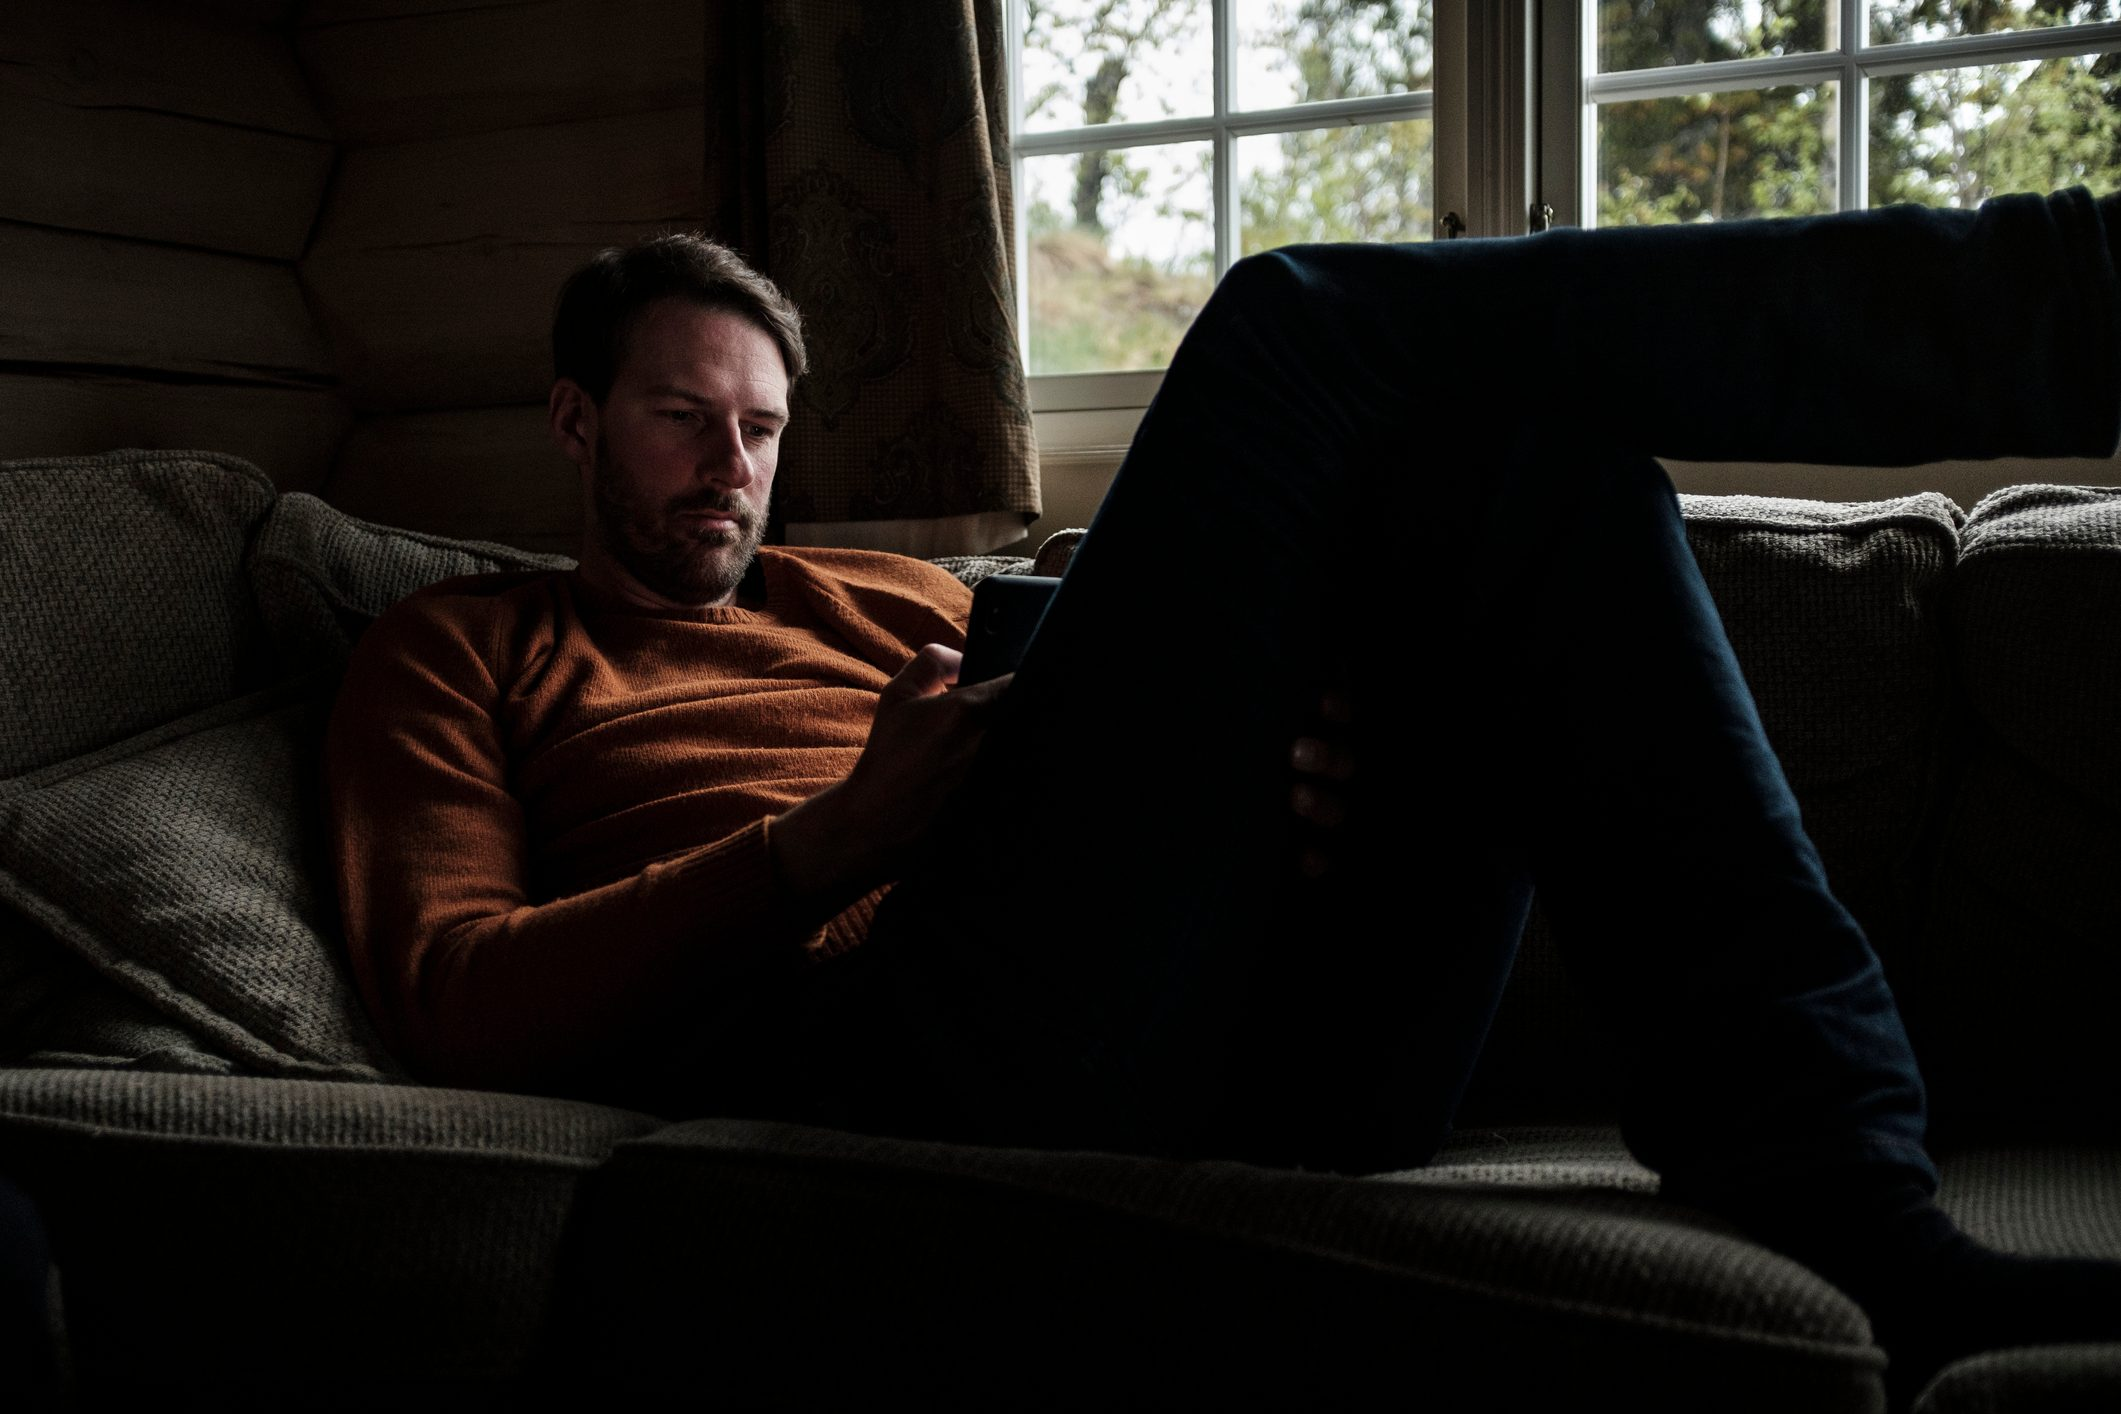 man sitting on sofa looking at smartphone device